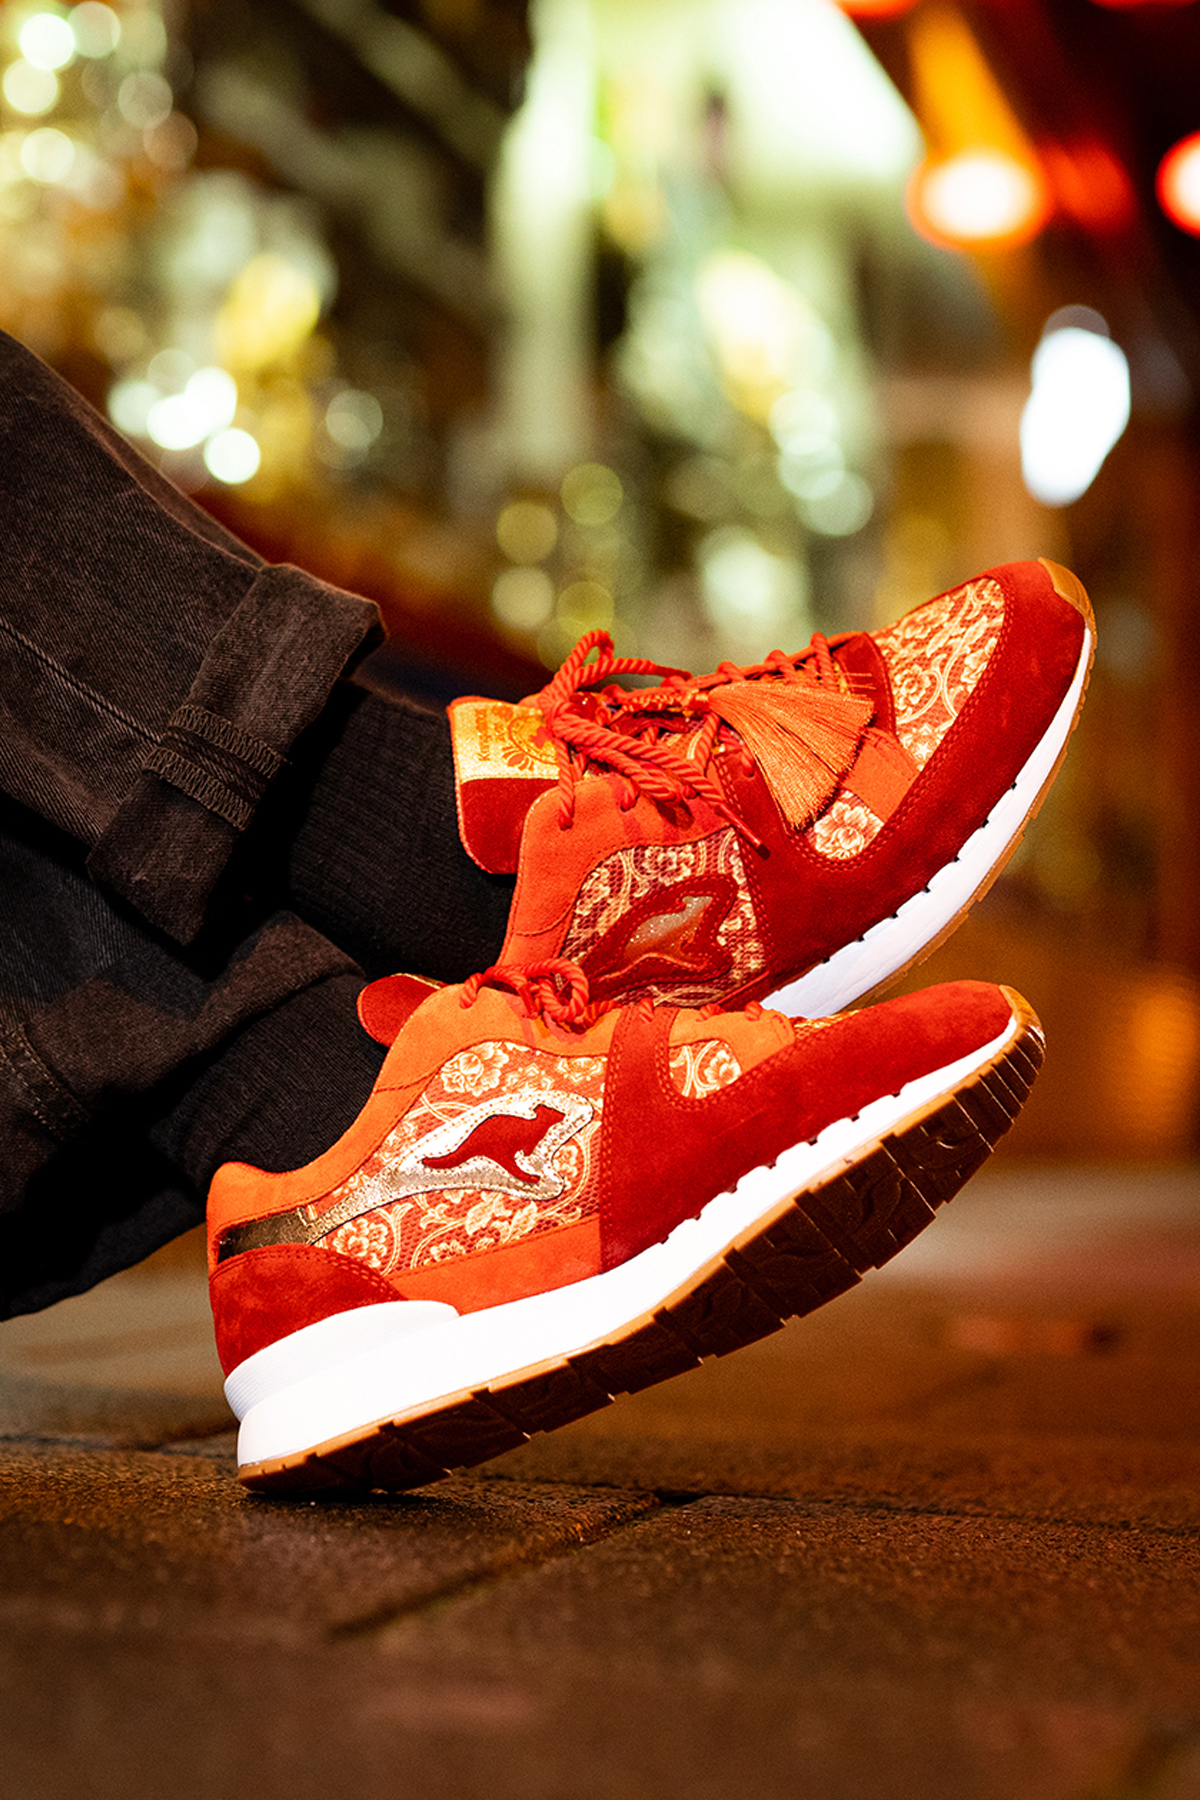 Kangaroos Coil-R1 CNY 'Year of the Rat'